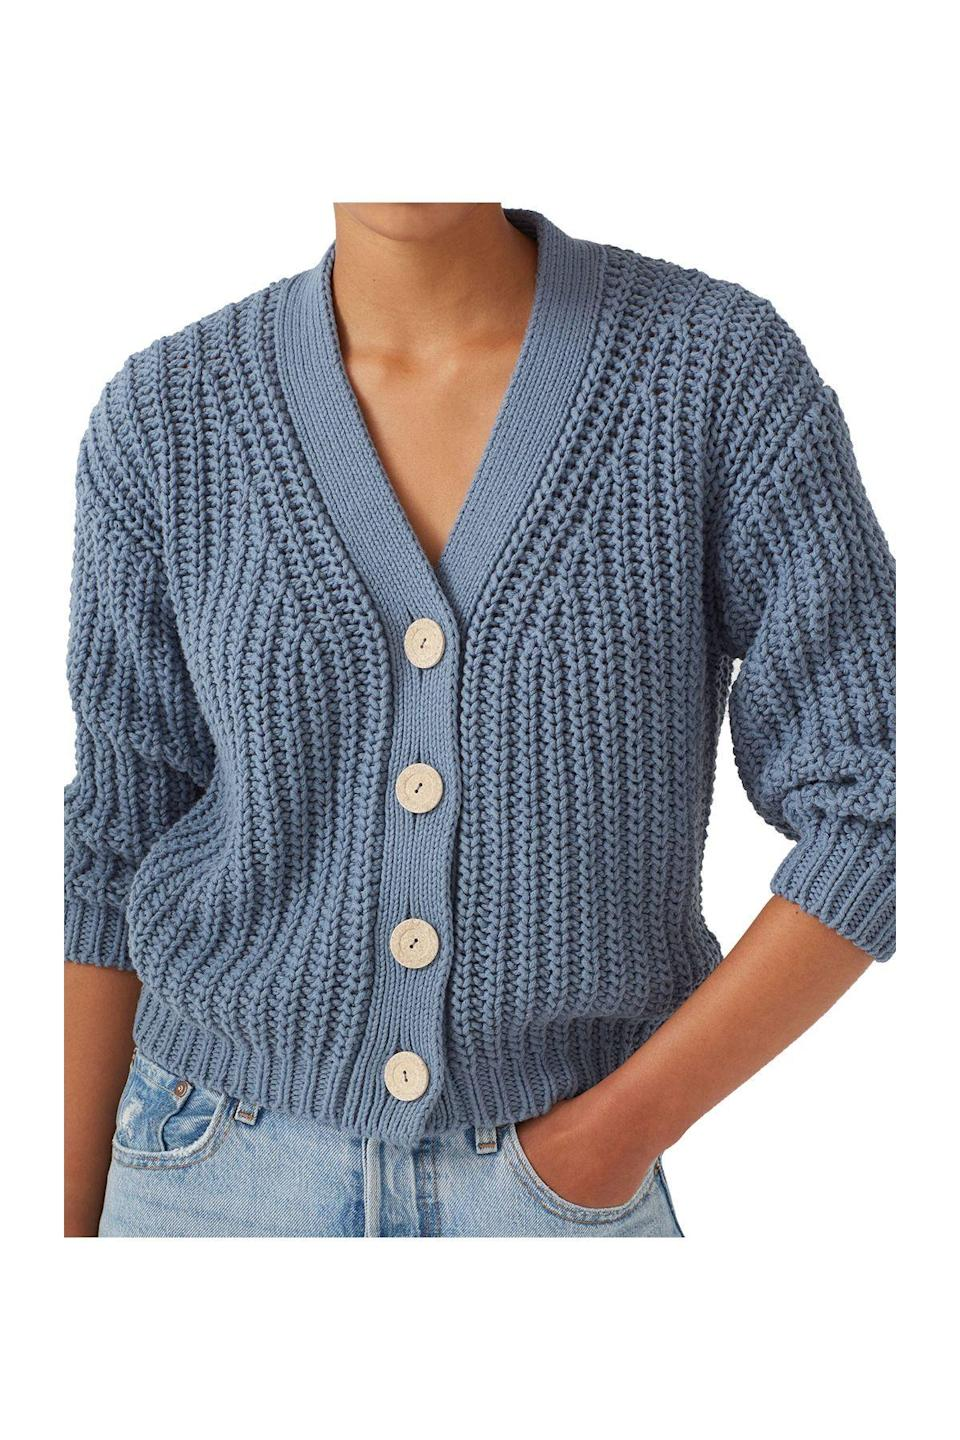 """<p><strong>Babaa</strong></p><p>babaa.es</p><p><strong>$230.00</strong></p><p><a href=""""https://babaa.es/shop/women/women-cardigans/cardigan-woman-no18-mini-midnight-ocean/"""" rel=""""nofollow noopener"""" target=""""_blank"""" data-ylk=""""slk:Shop Now"""" class=""""link rapid-noclick-resp"""">Shop Now</a></p>"""